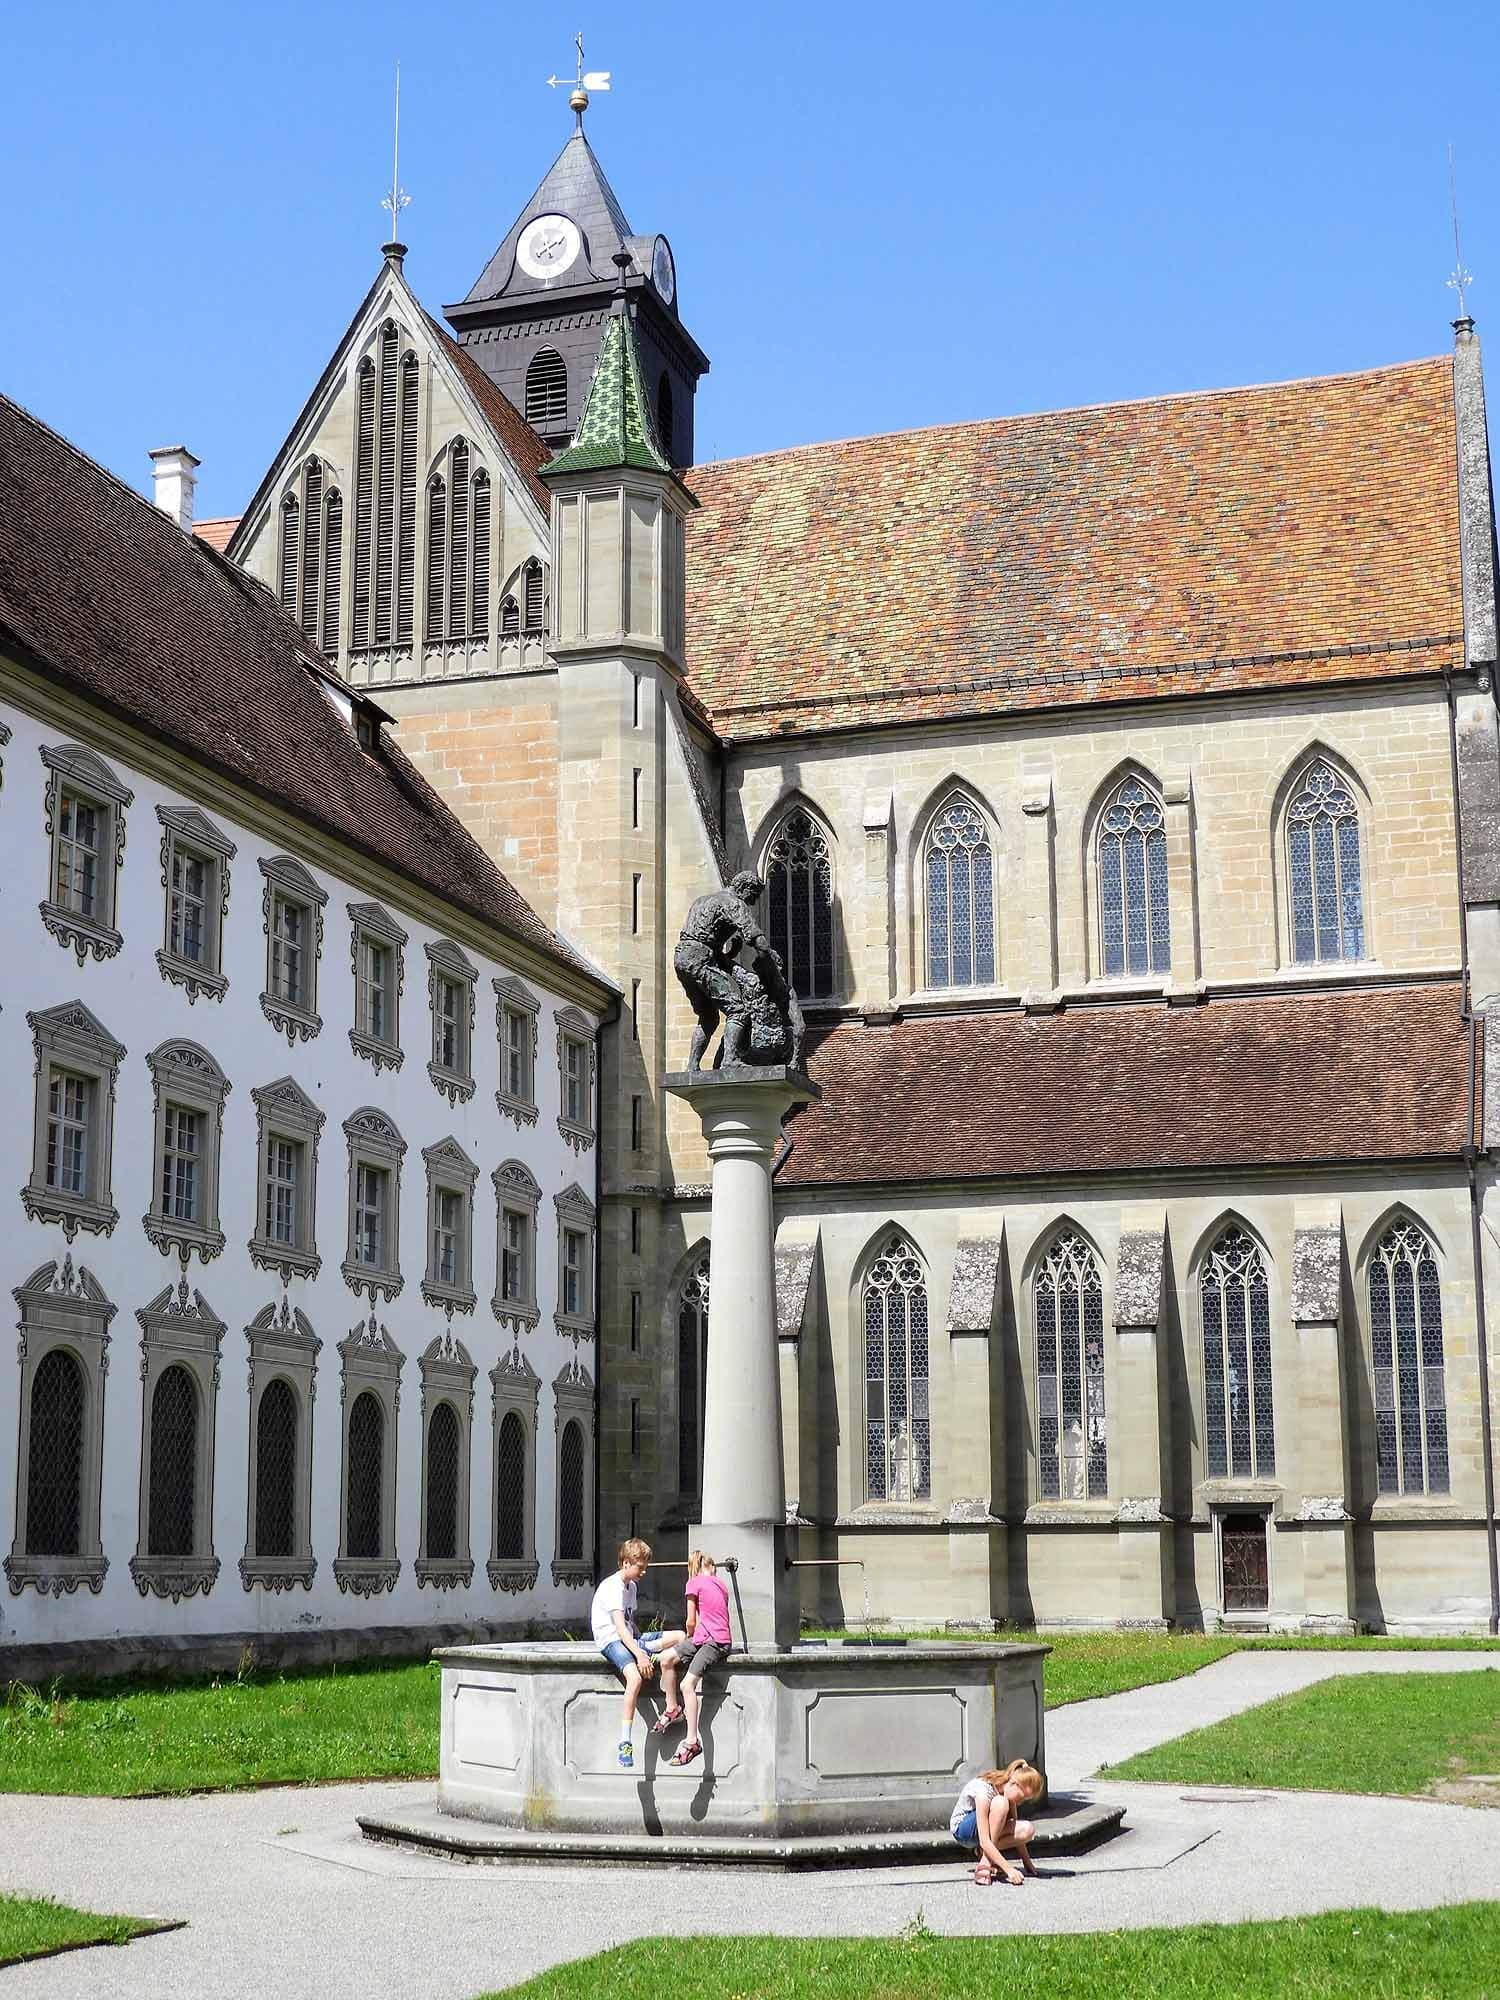 germany-salem-monastery-courtyard-well.jpg